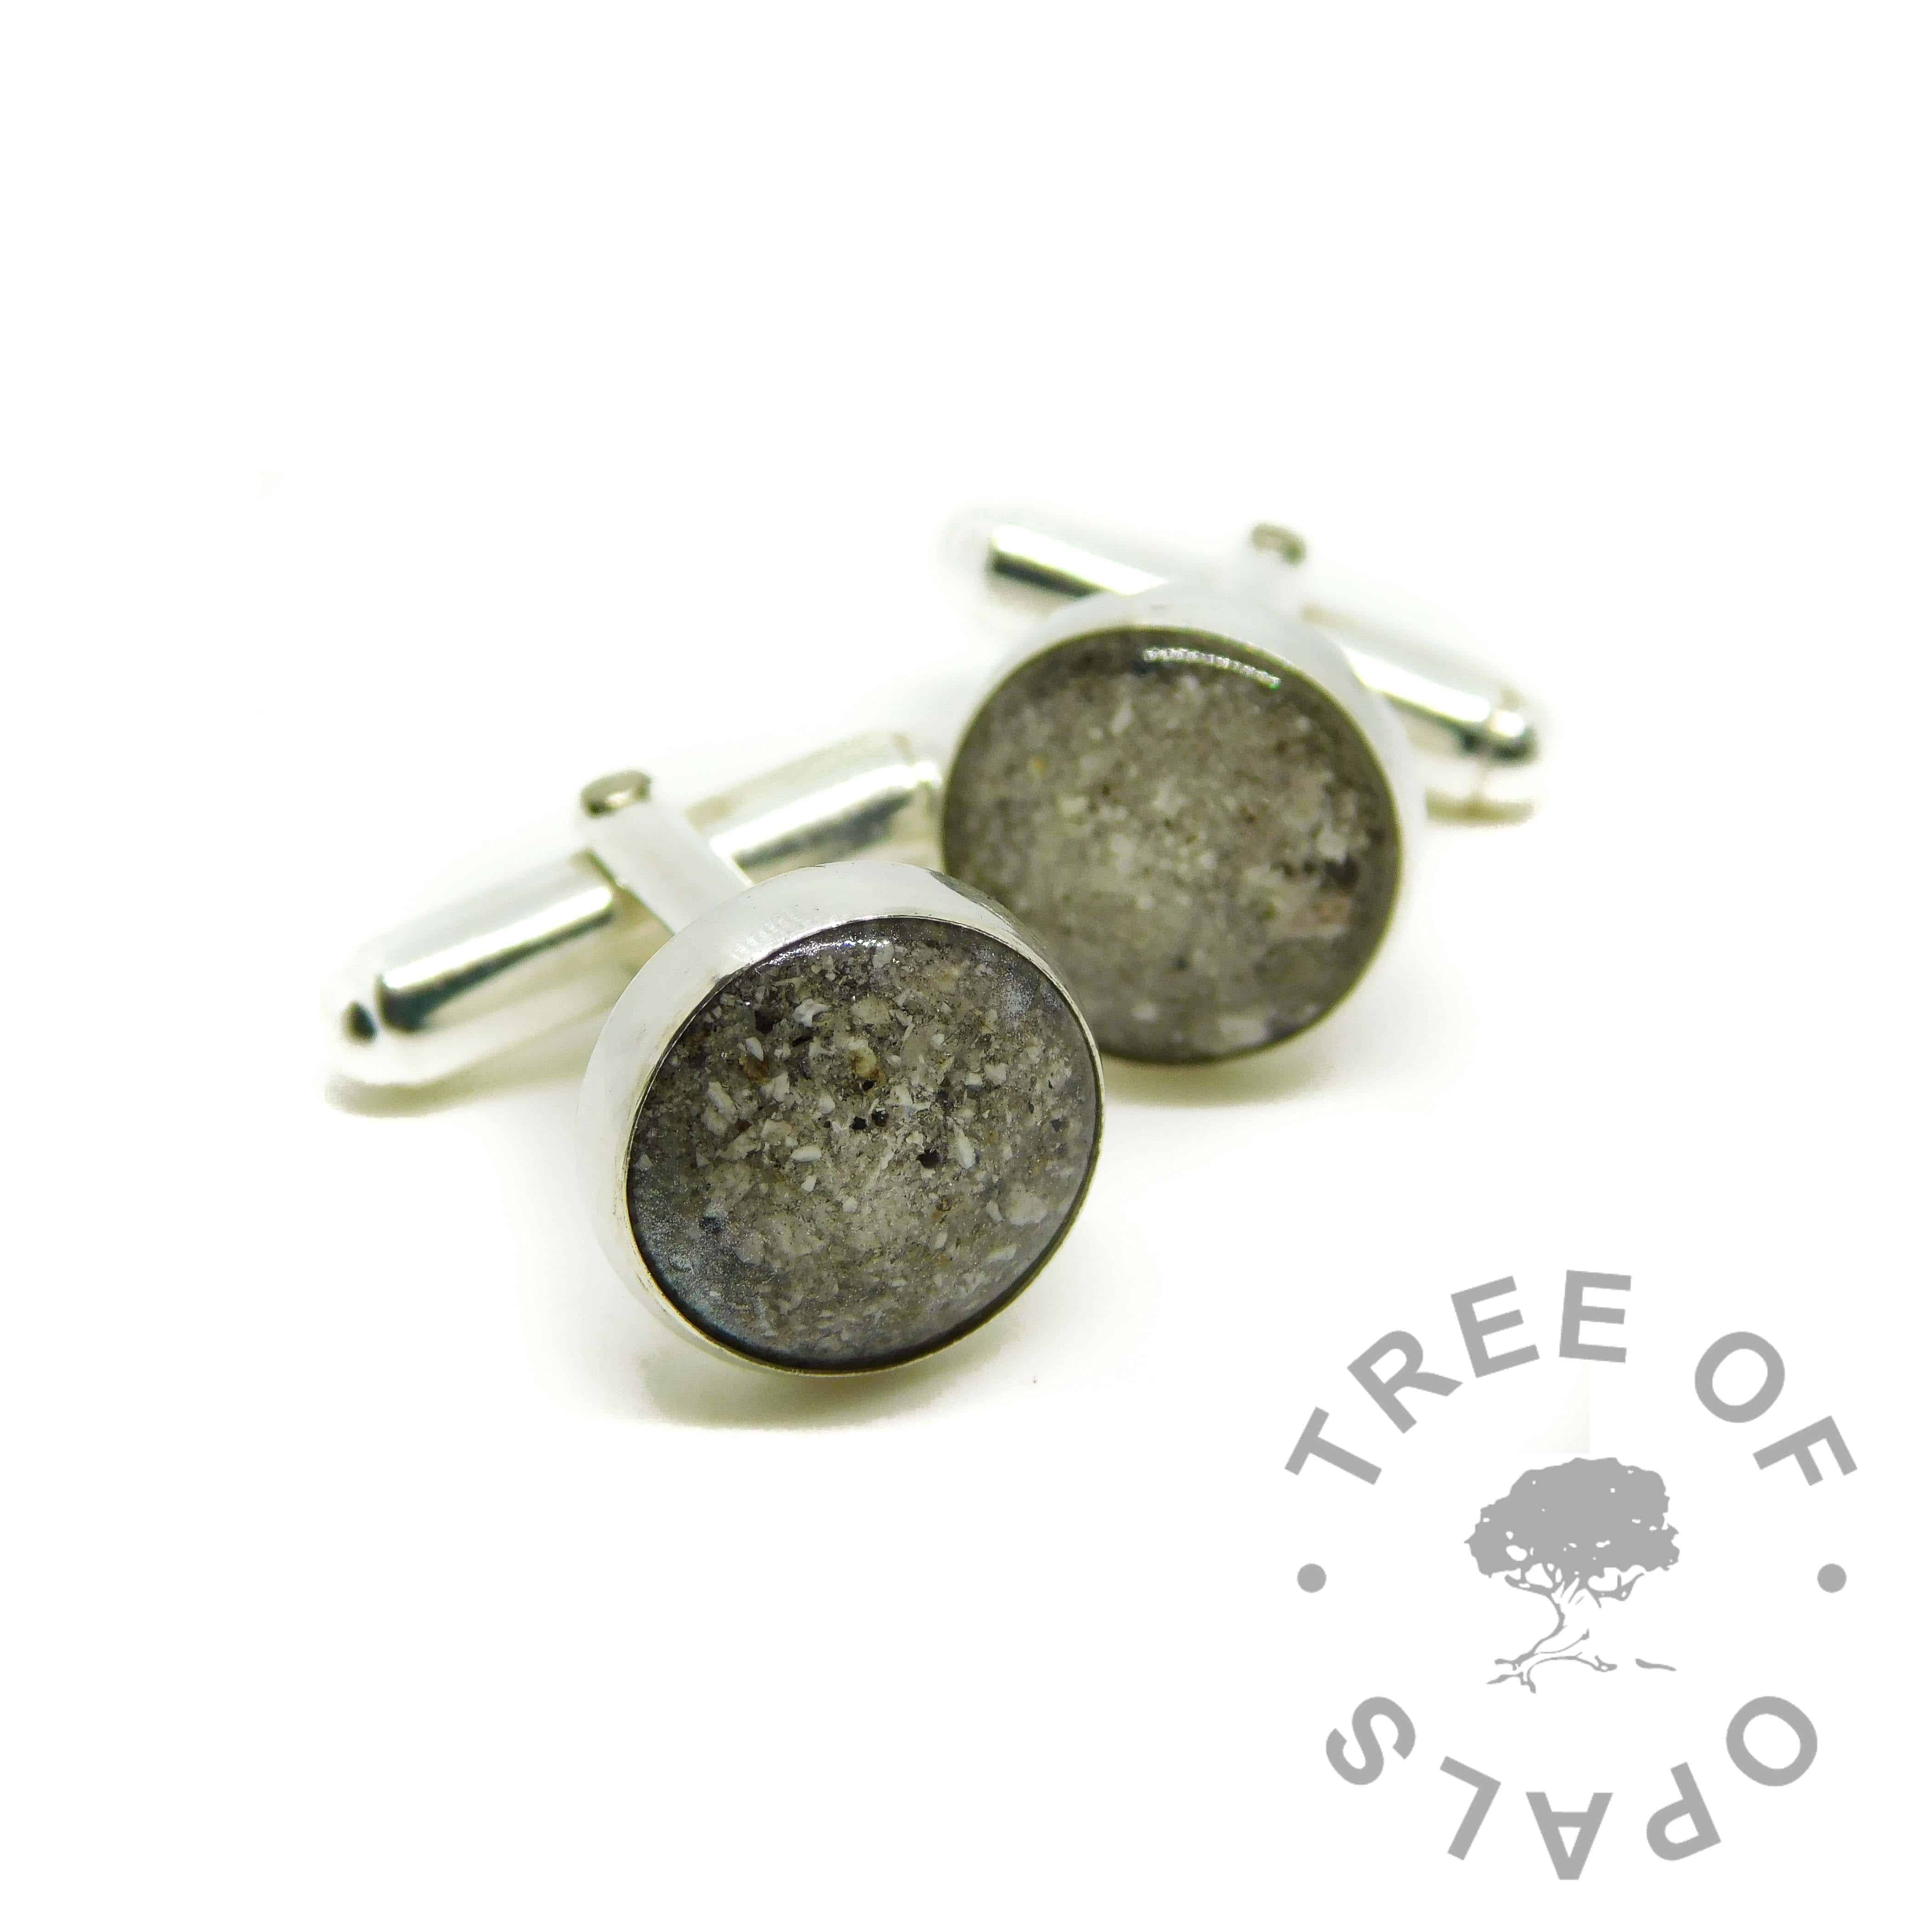 diamond powder April birthstone and cremation ashes cufflinks. 12mm solid sterling silver setting